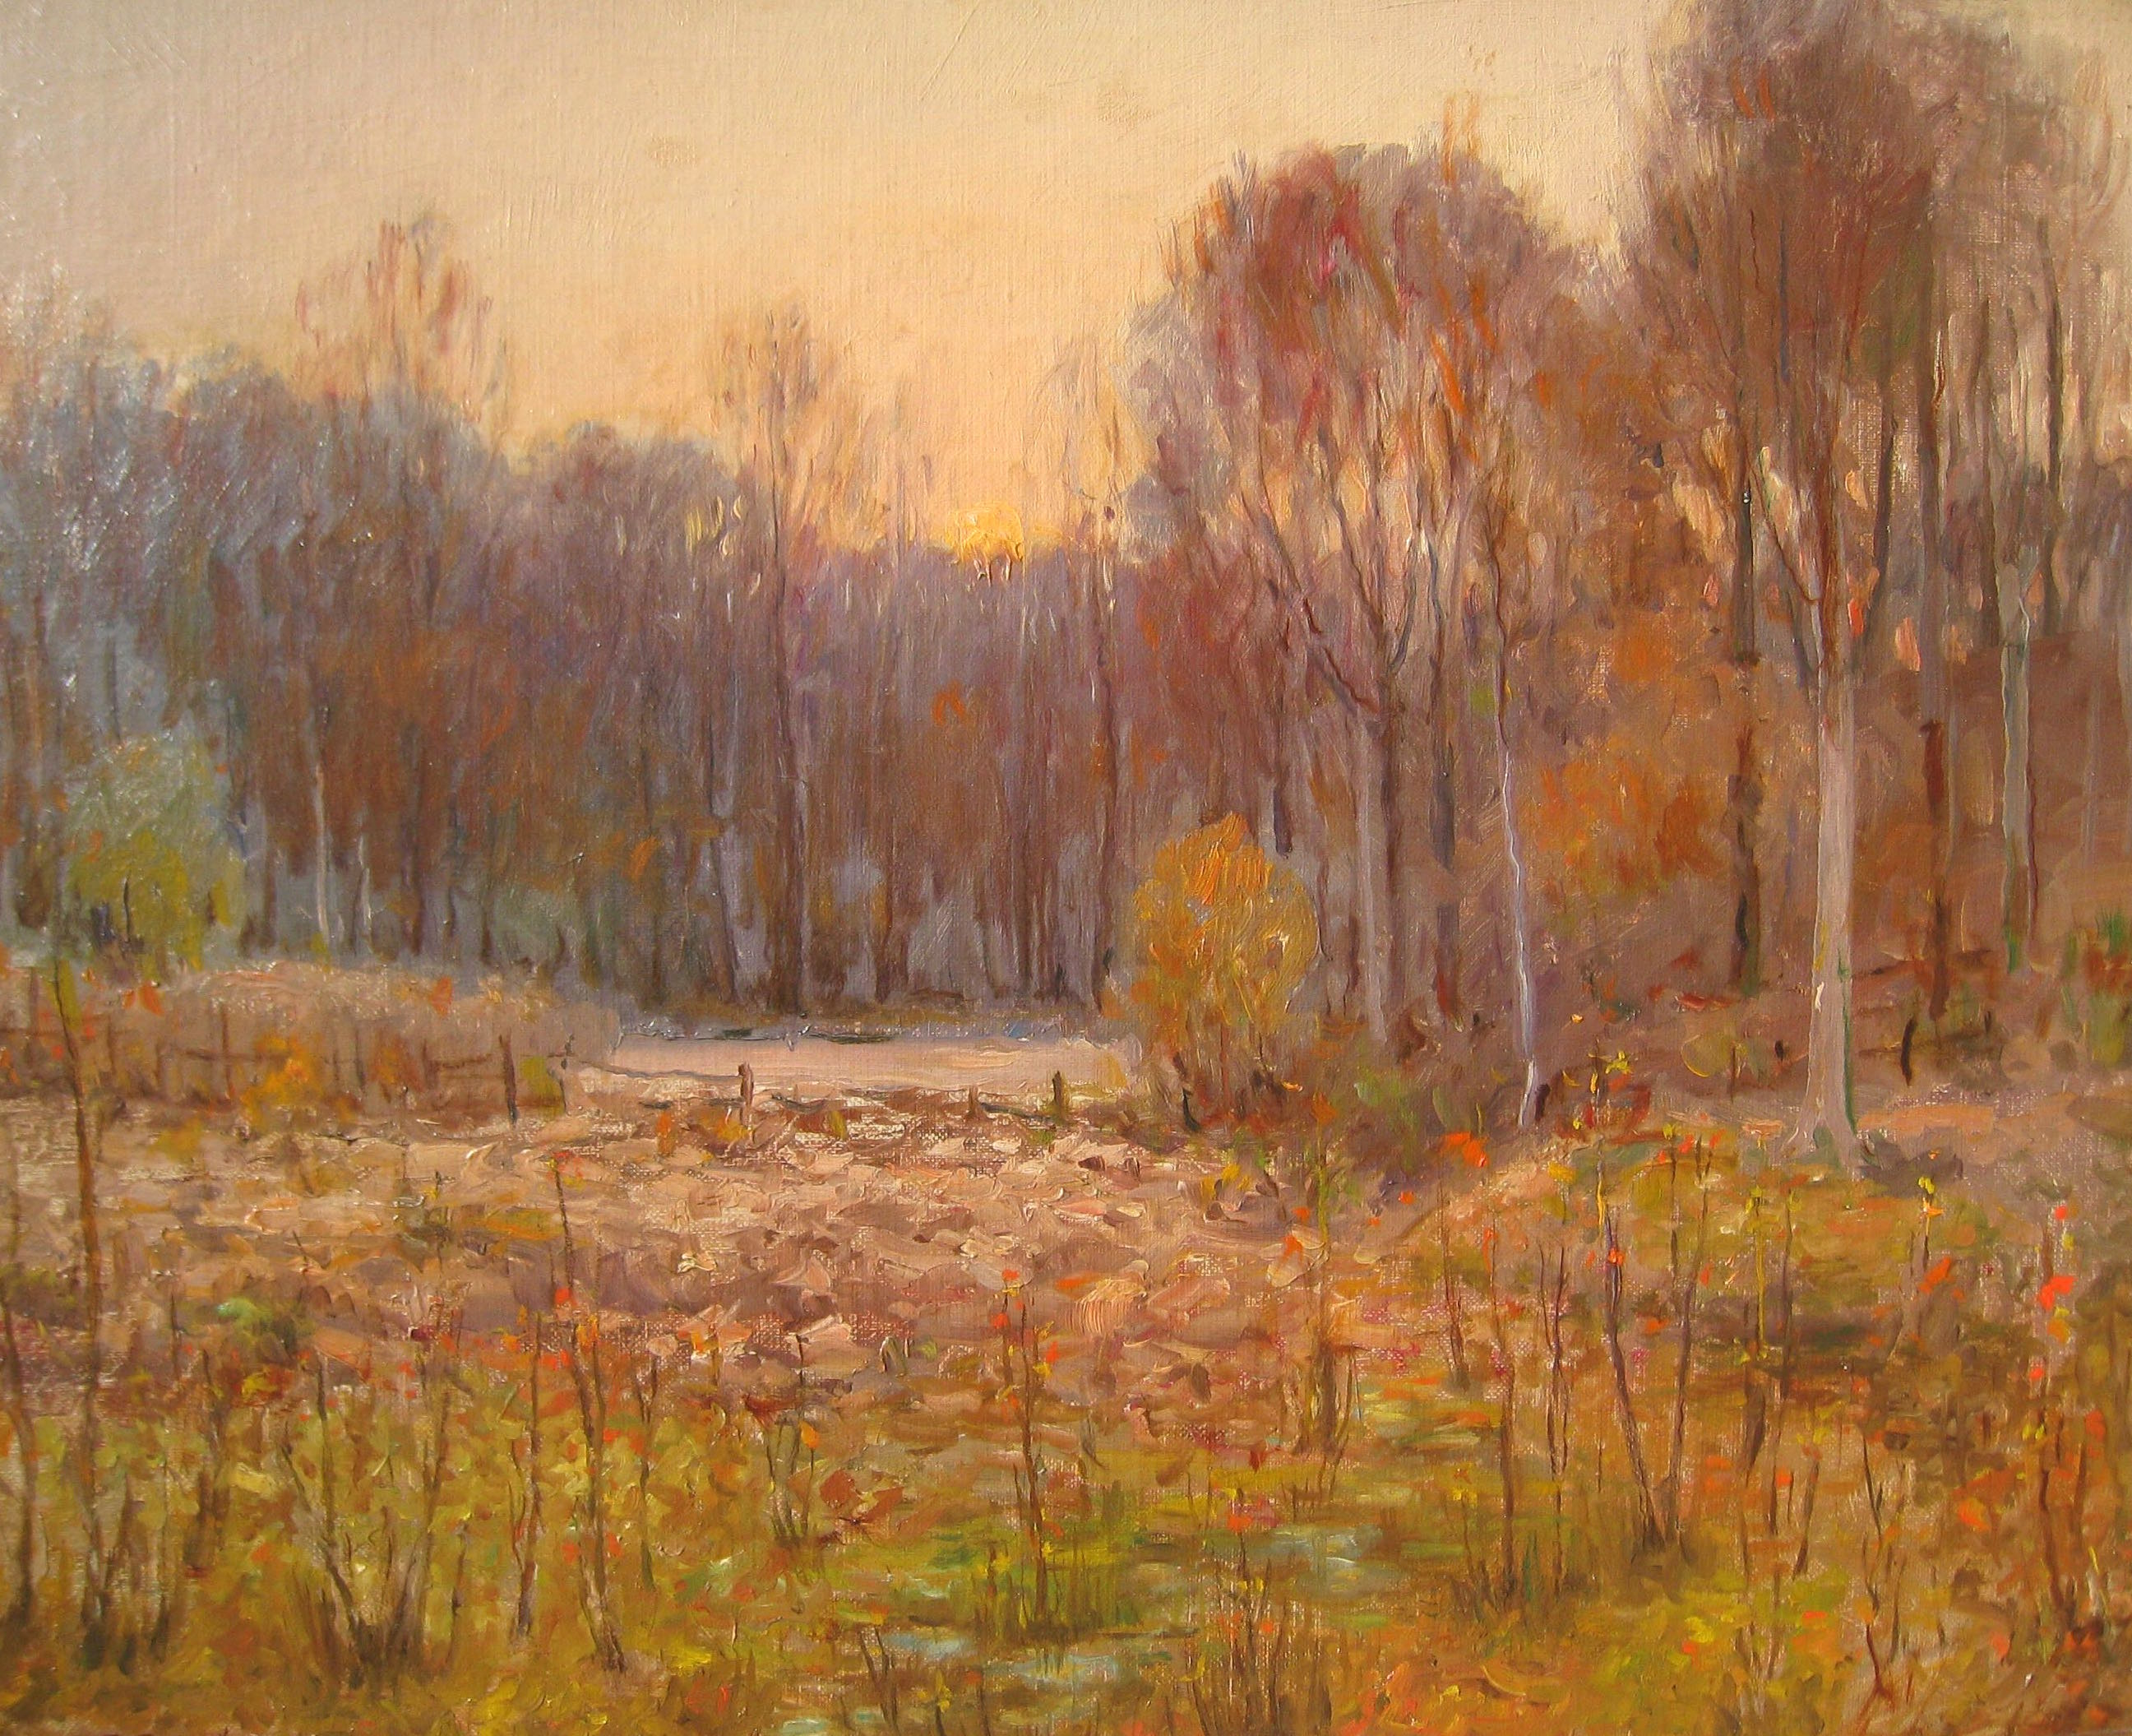 bundy-autumnsunrise-cropped1a